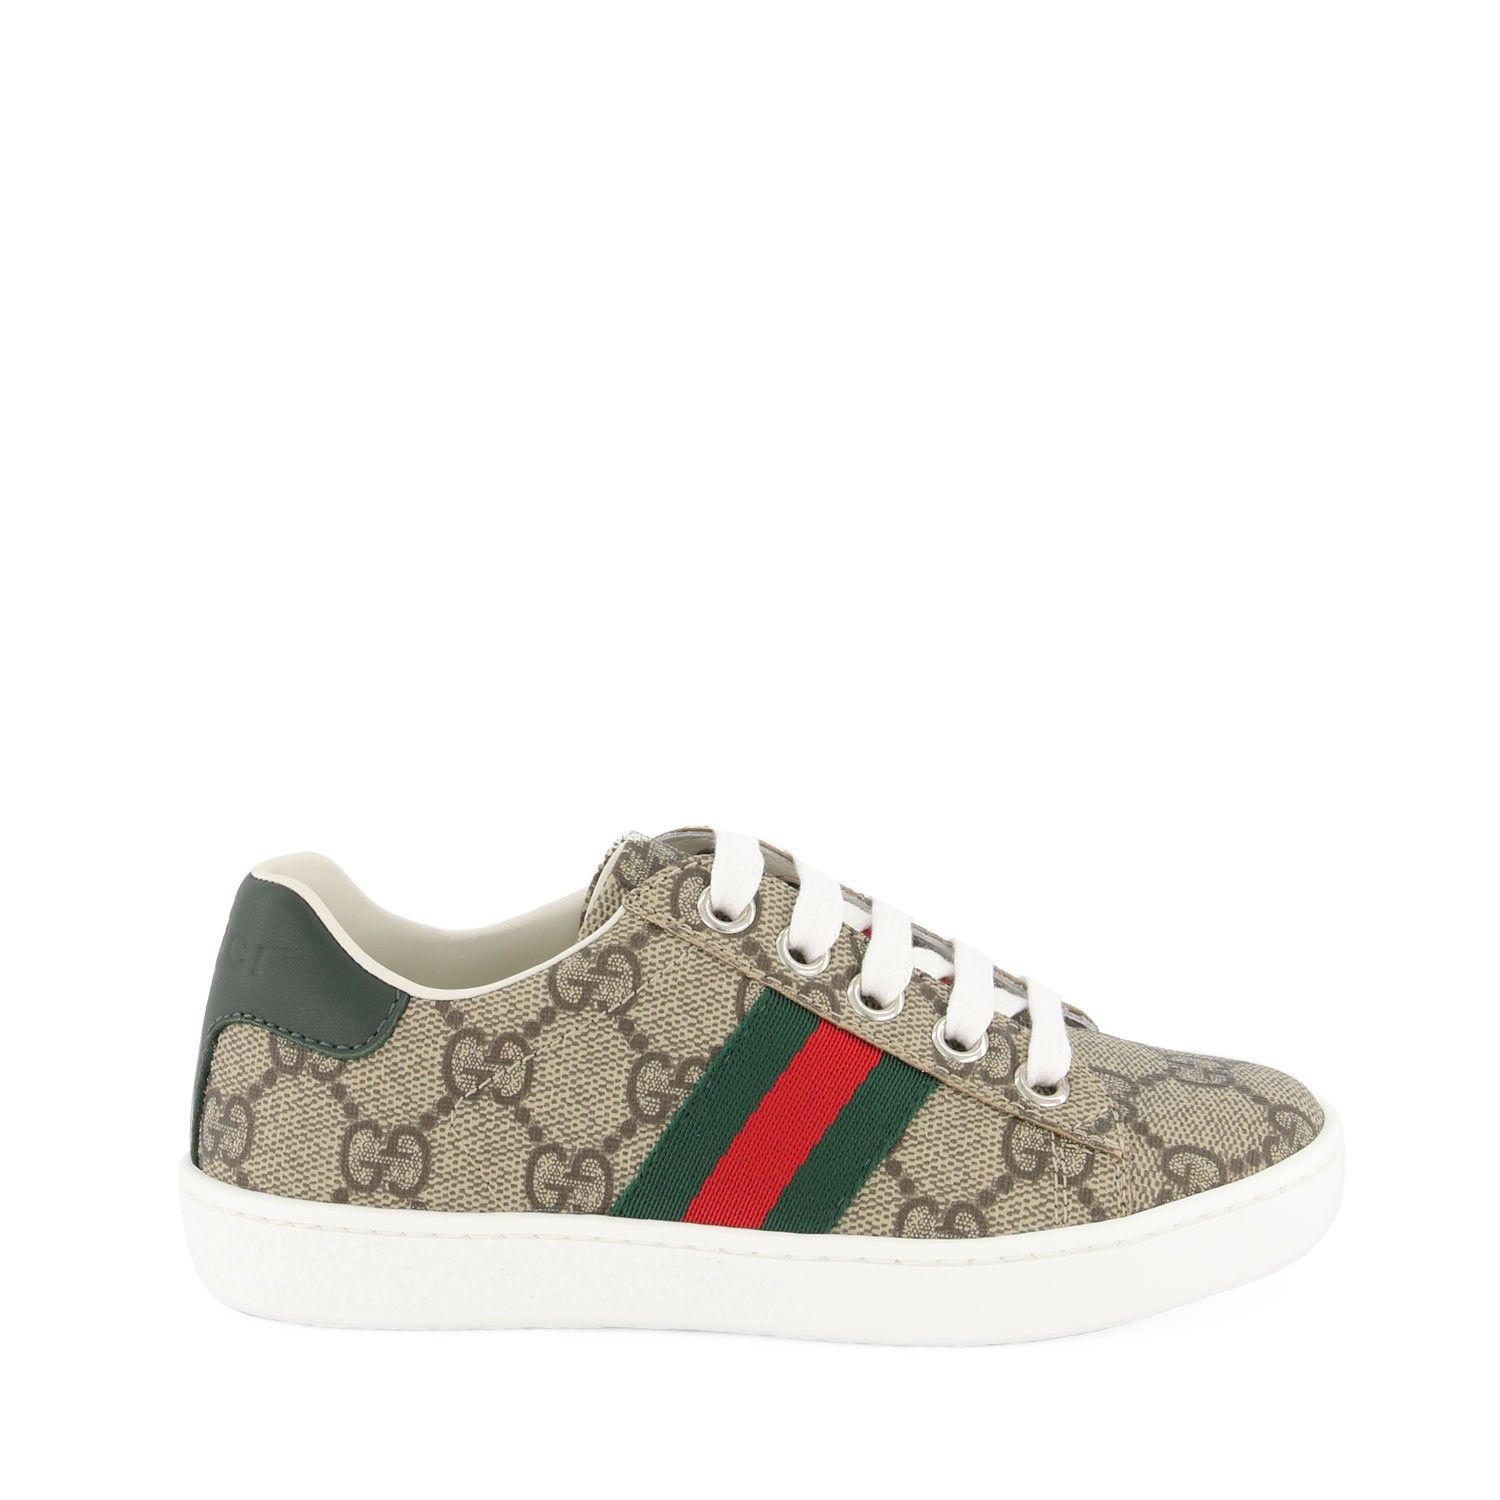 Picture of Gucci 433149 kids sneakers beige